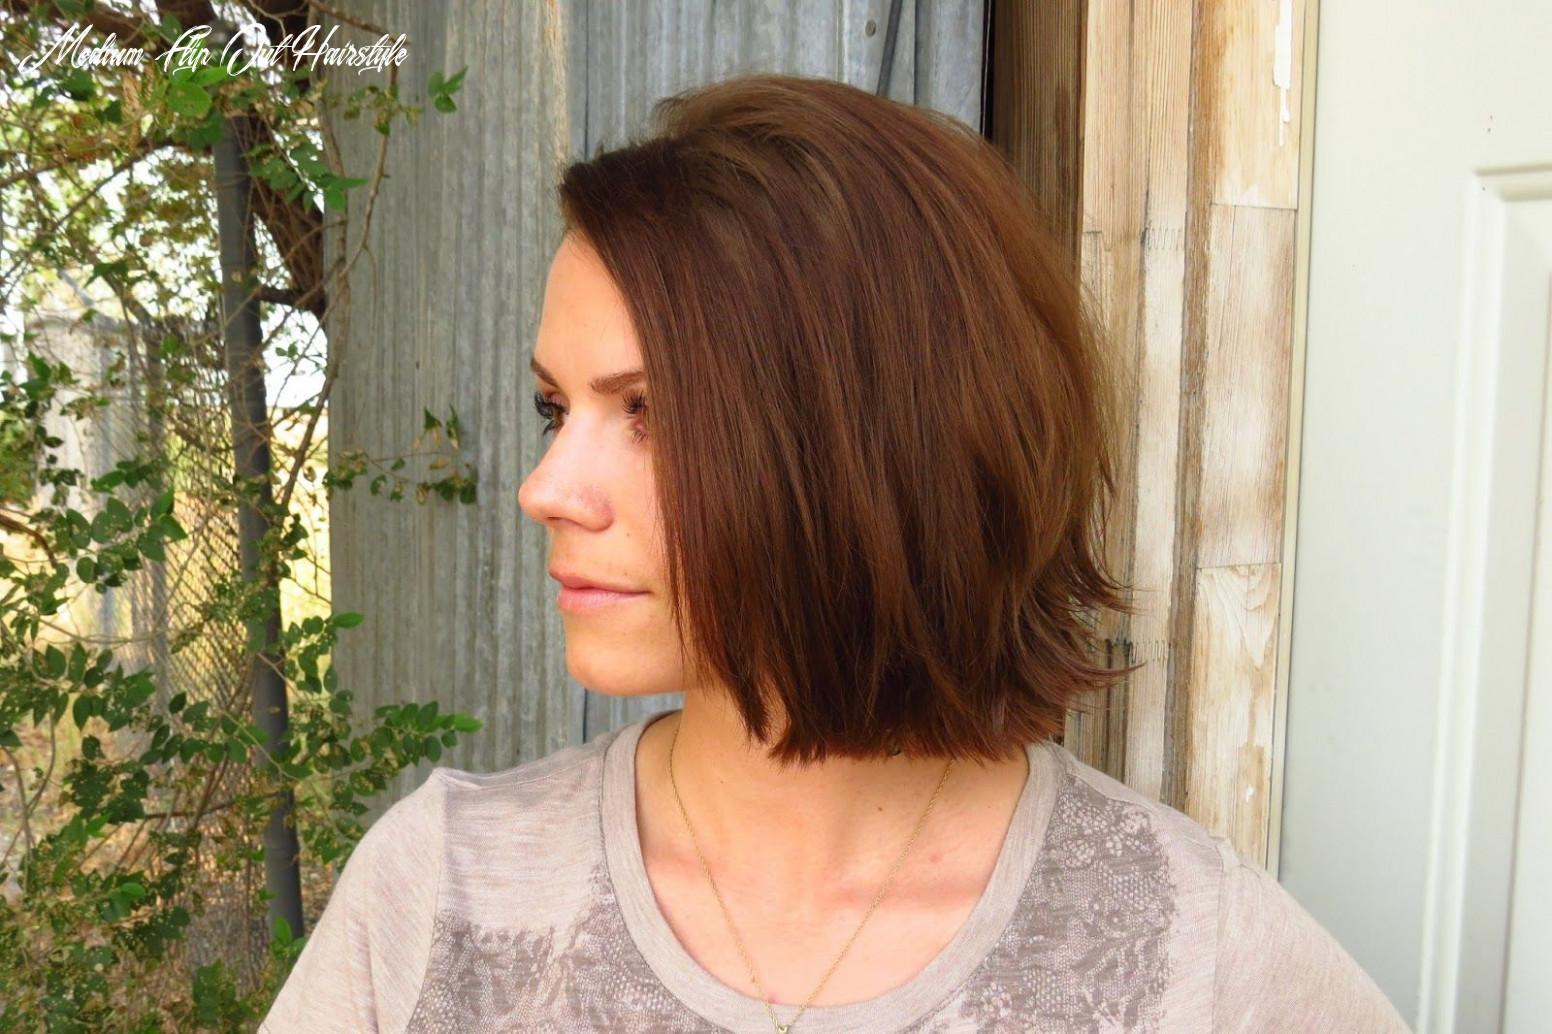 Hairstyles for short hair, straight in front flipped out in back